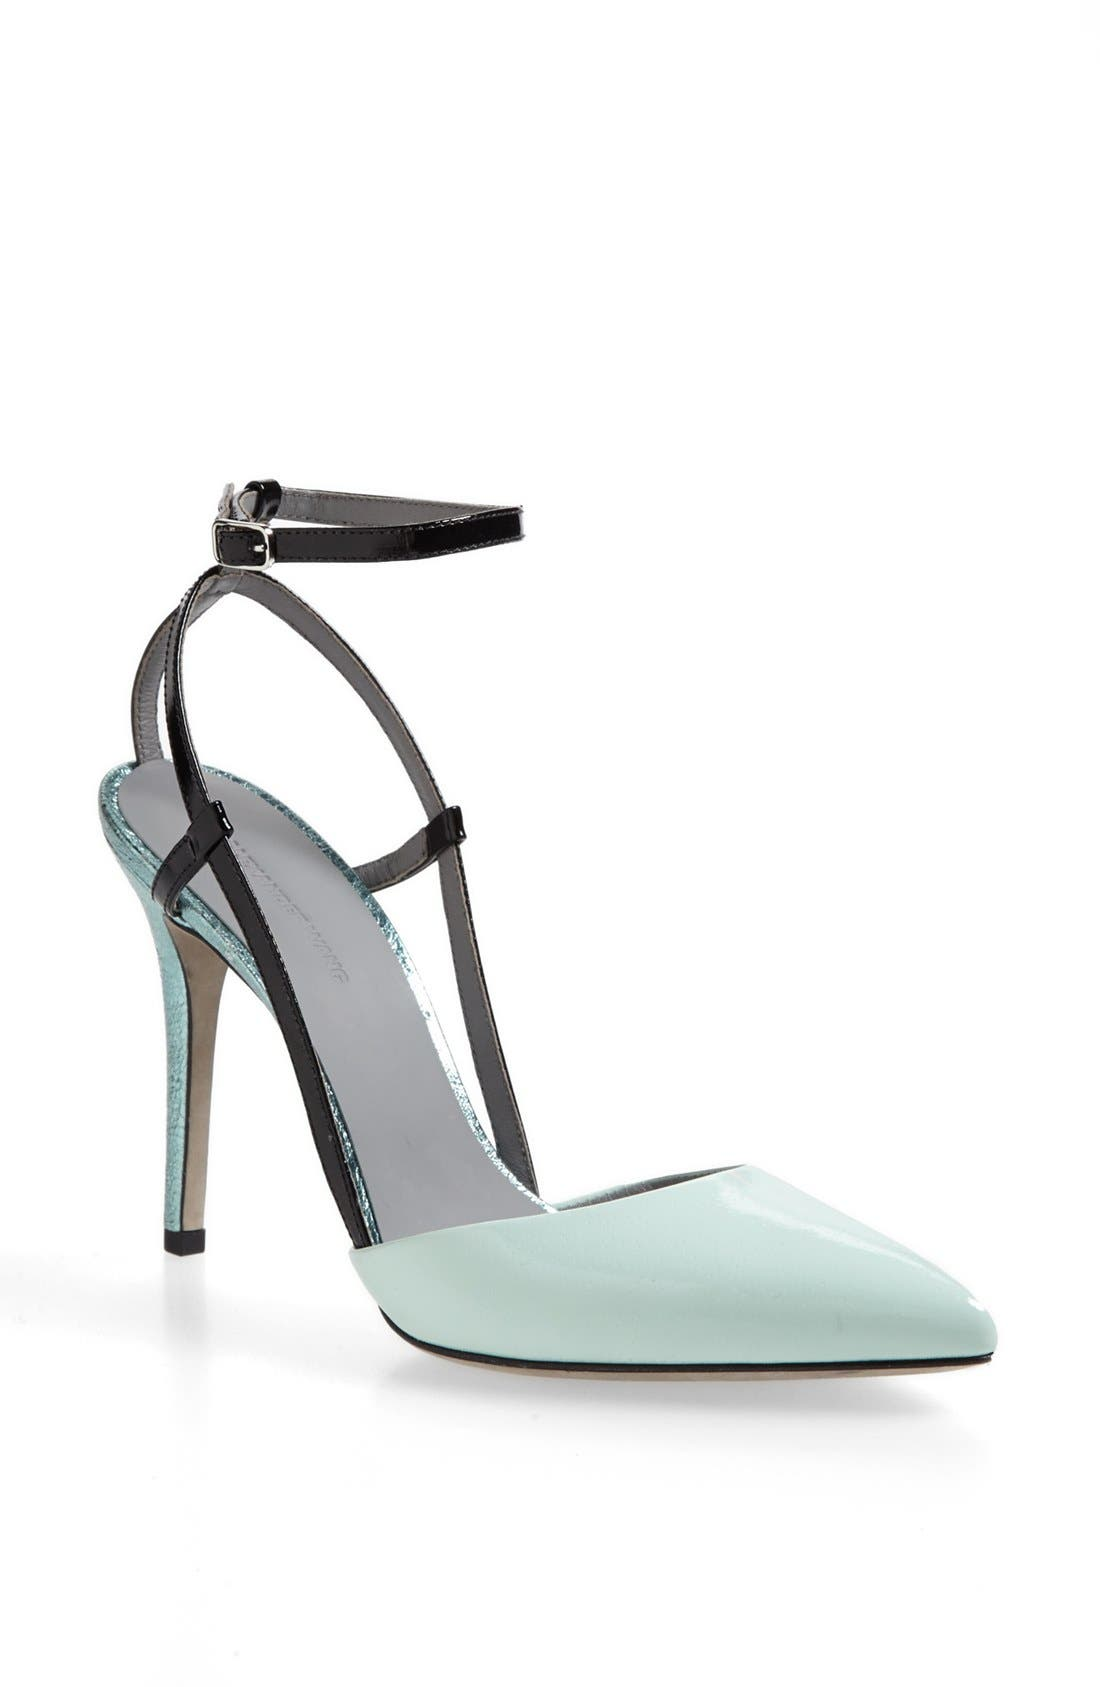 Main Image - Alexander Wang 'Jodie' Ankle Strap Calfskin Leather Pump